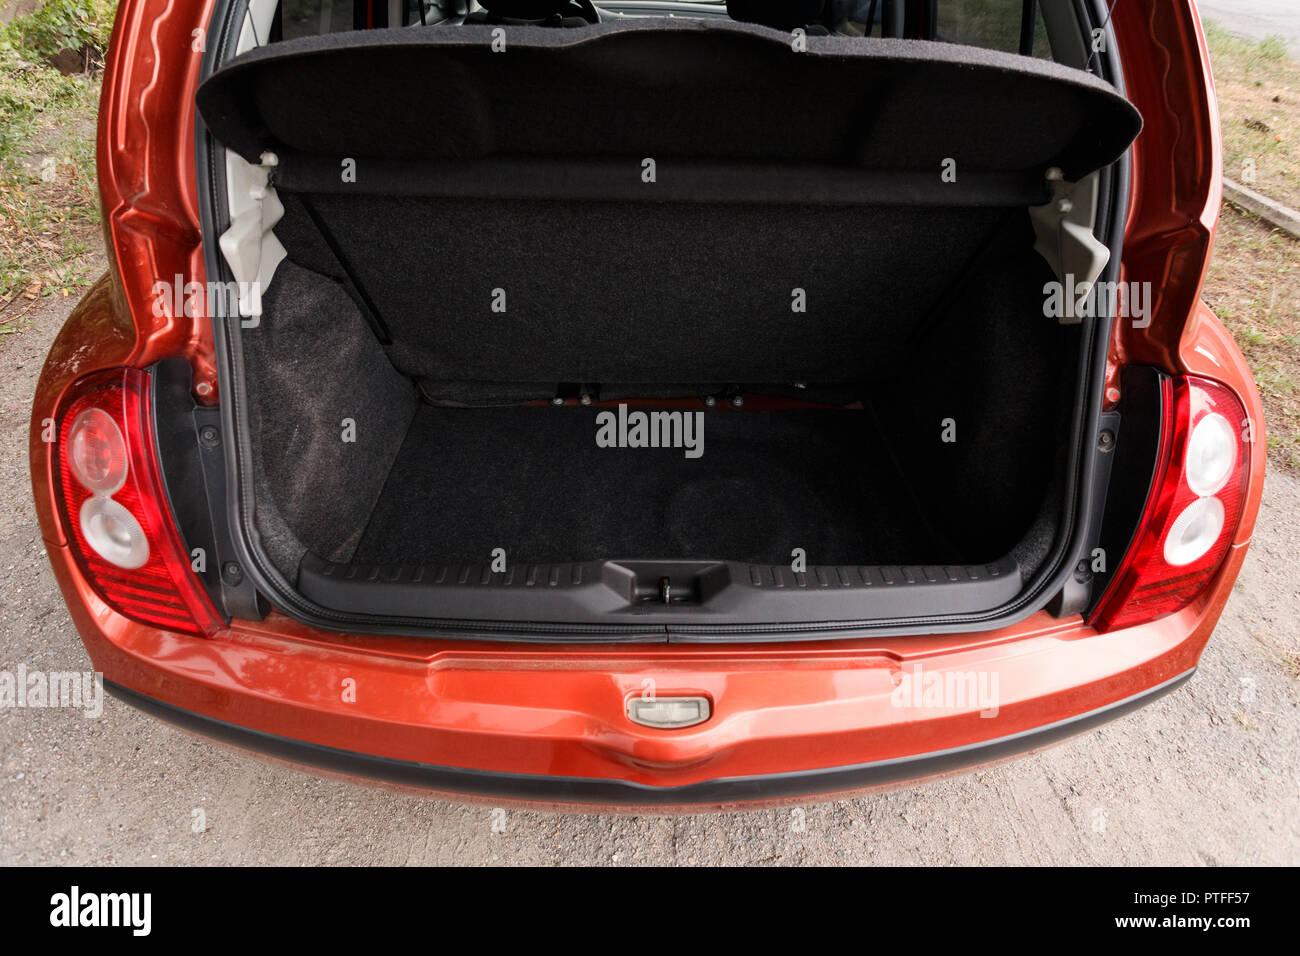 Car with open clean empty trunk of orange hatchback - Stock Image